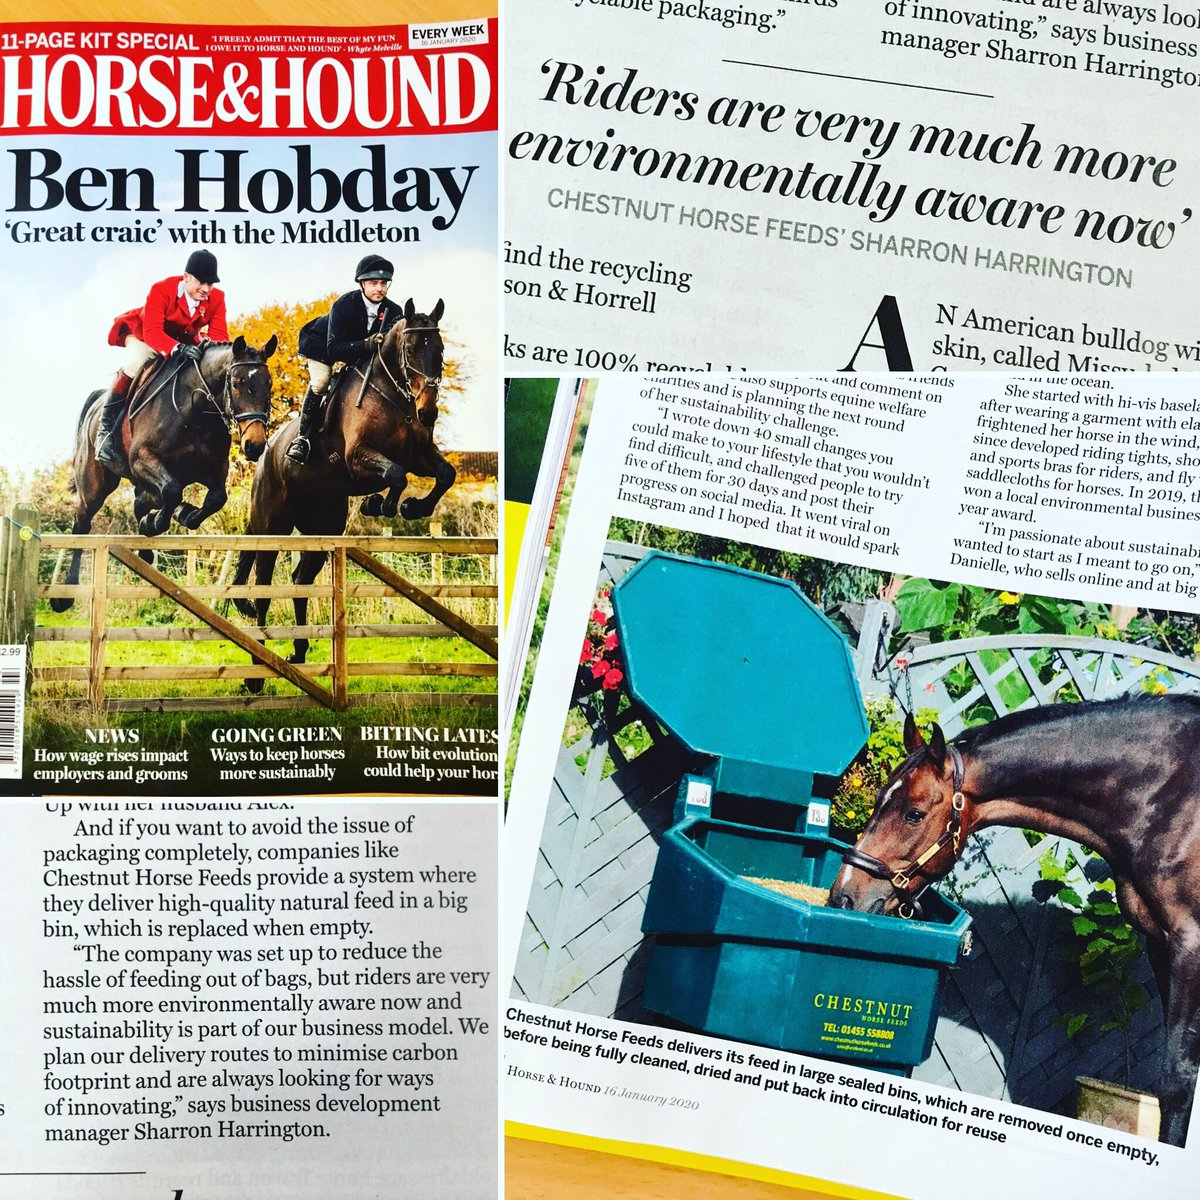 Great feature on sustainability in this weeks @horseandhound featuring the CHF bulk bins alongside some great innovative businesses making a difference in the equine industry #chestnuthorsefeeds #sustainability #horseandhound #feedthechestnutway #reduceplasticwaste #horsefeedpic.twitter.com/fwwibmhFDC